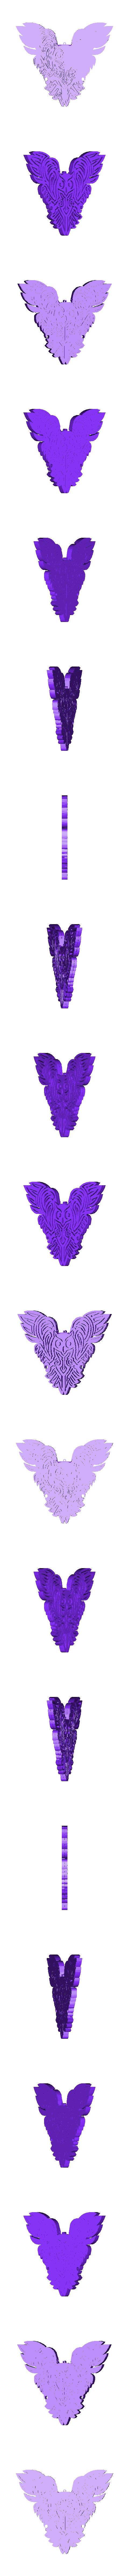 Chouette_Decor.stl Download free STL file OWL OWL Pendant and Wall Decoration • 3D printing object, oasisk